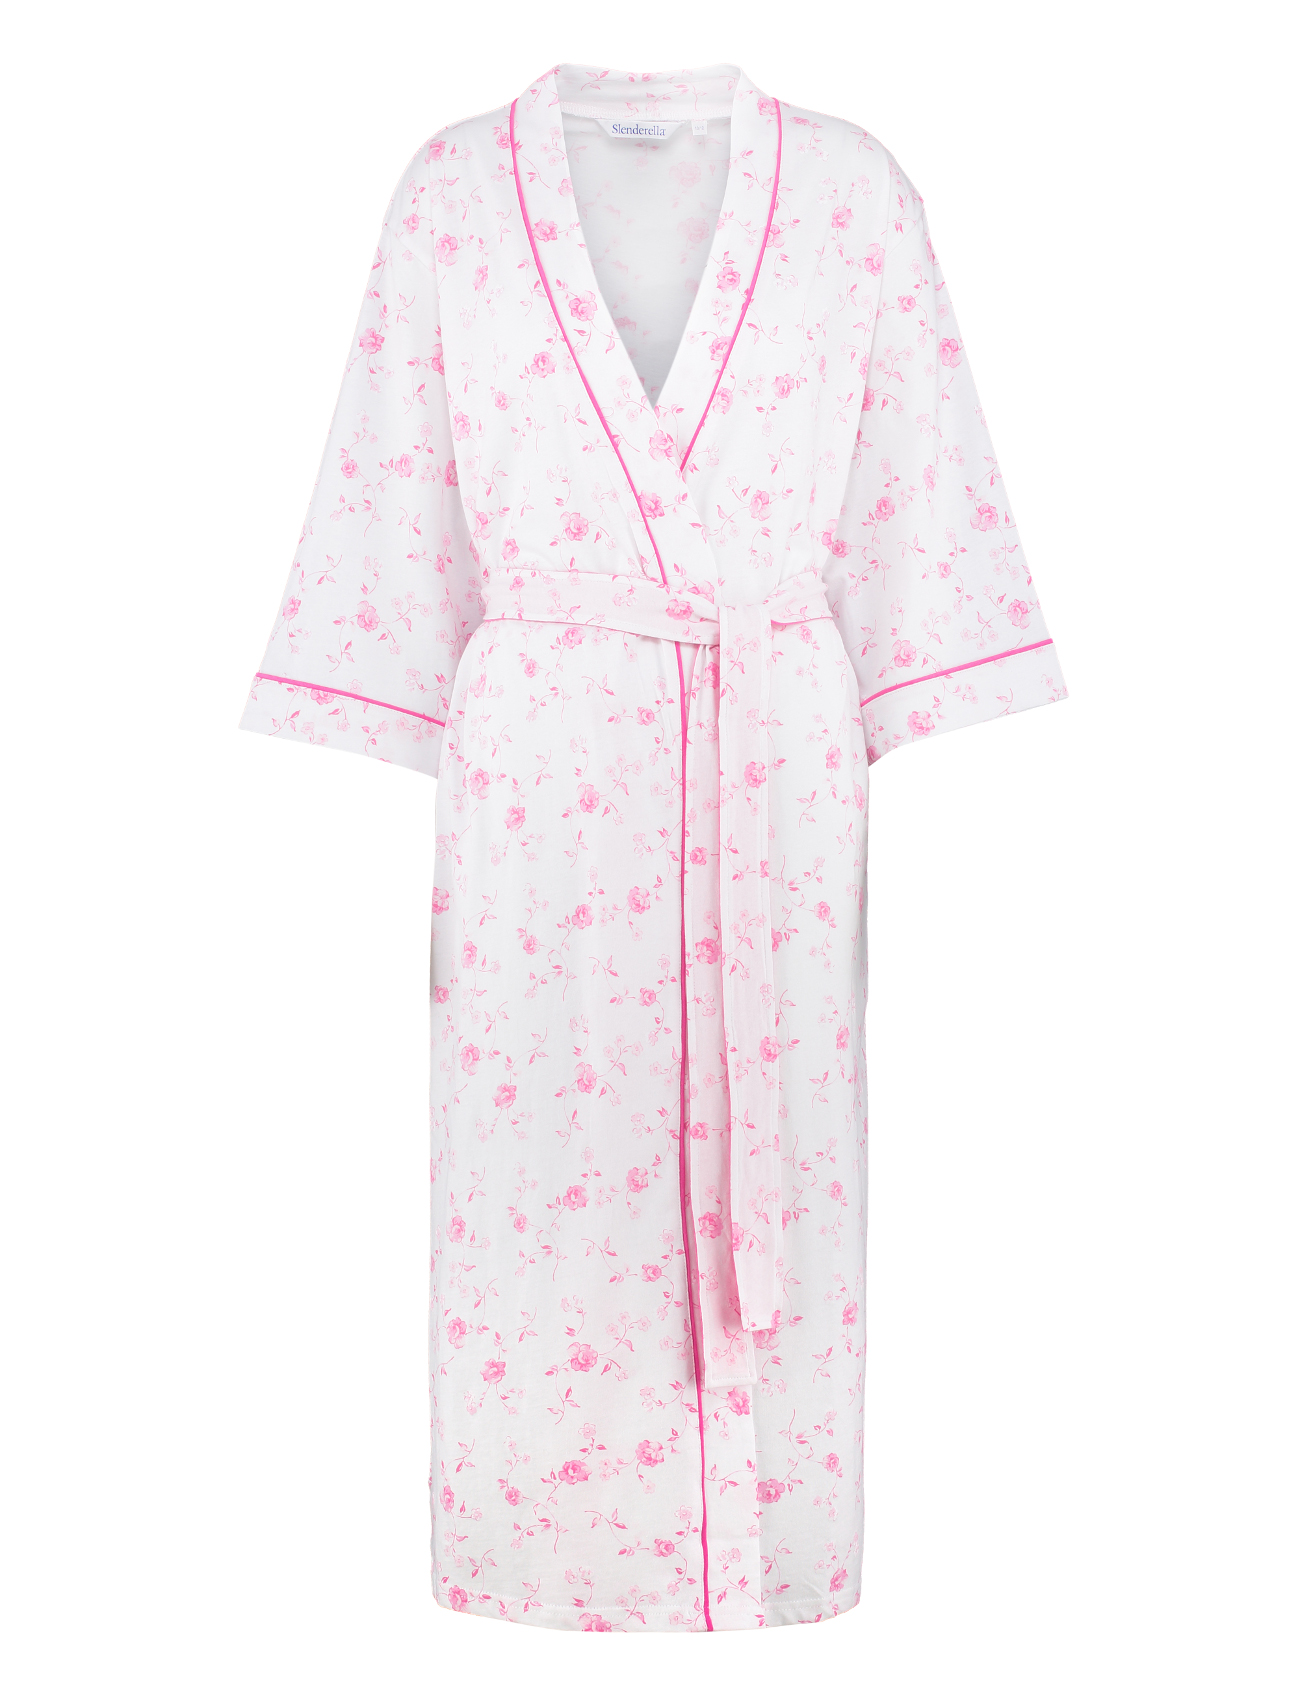 Bathrobe Ladies Wrap Around Floral 3/4 Sleeve Womens 100% Cotton ...